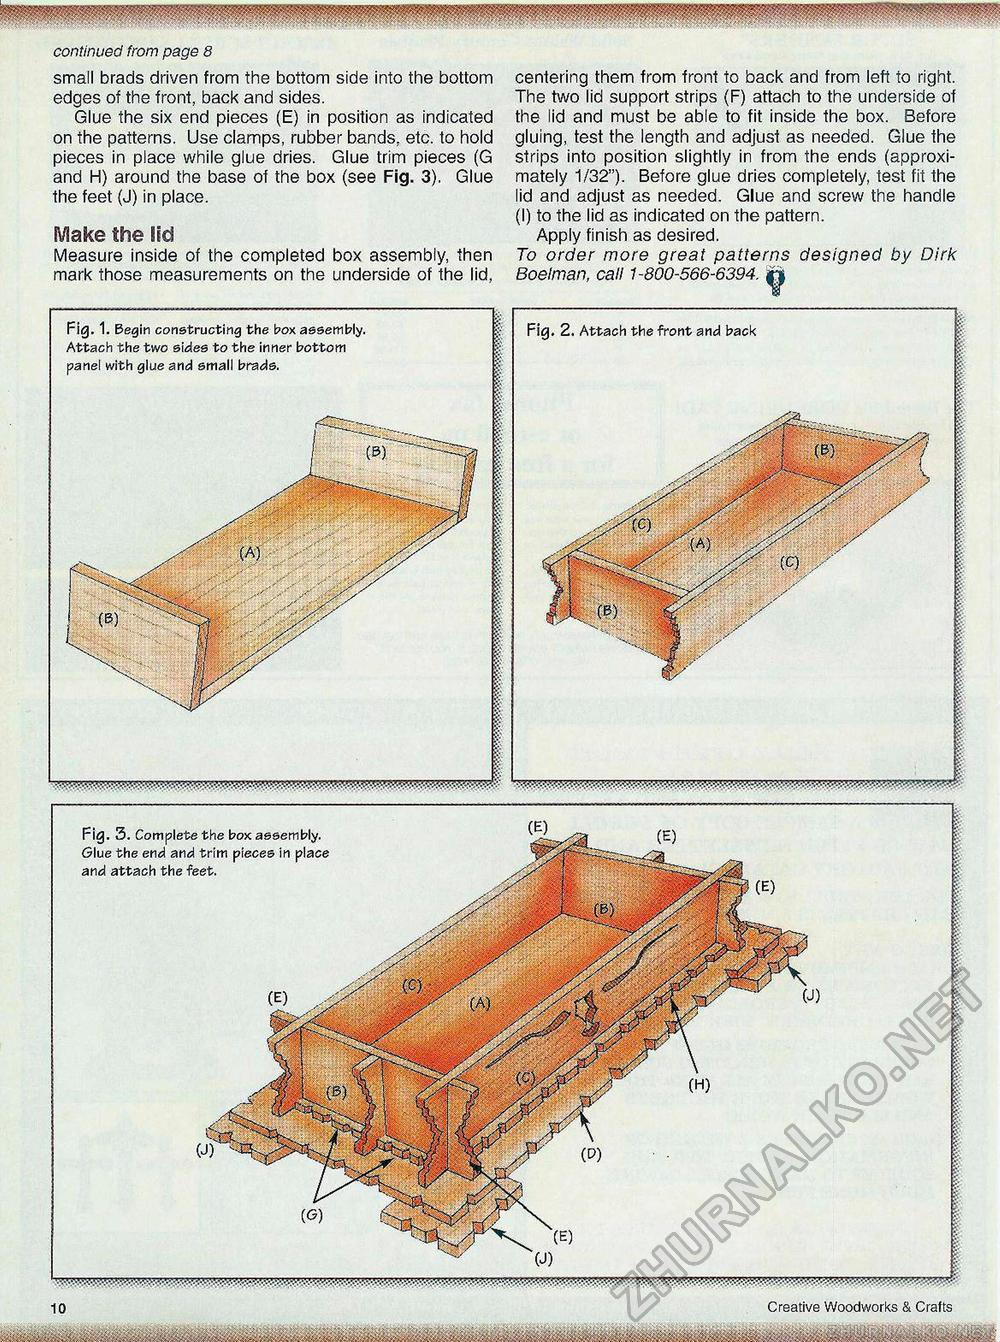 Creative Woodworks & crafts 2000-11, страница 10